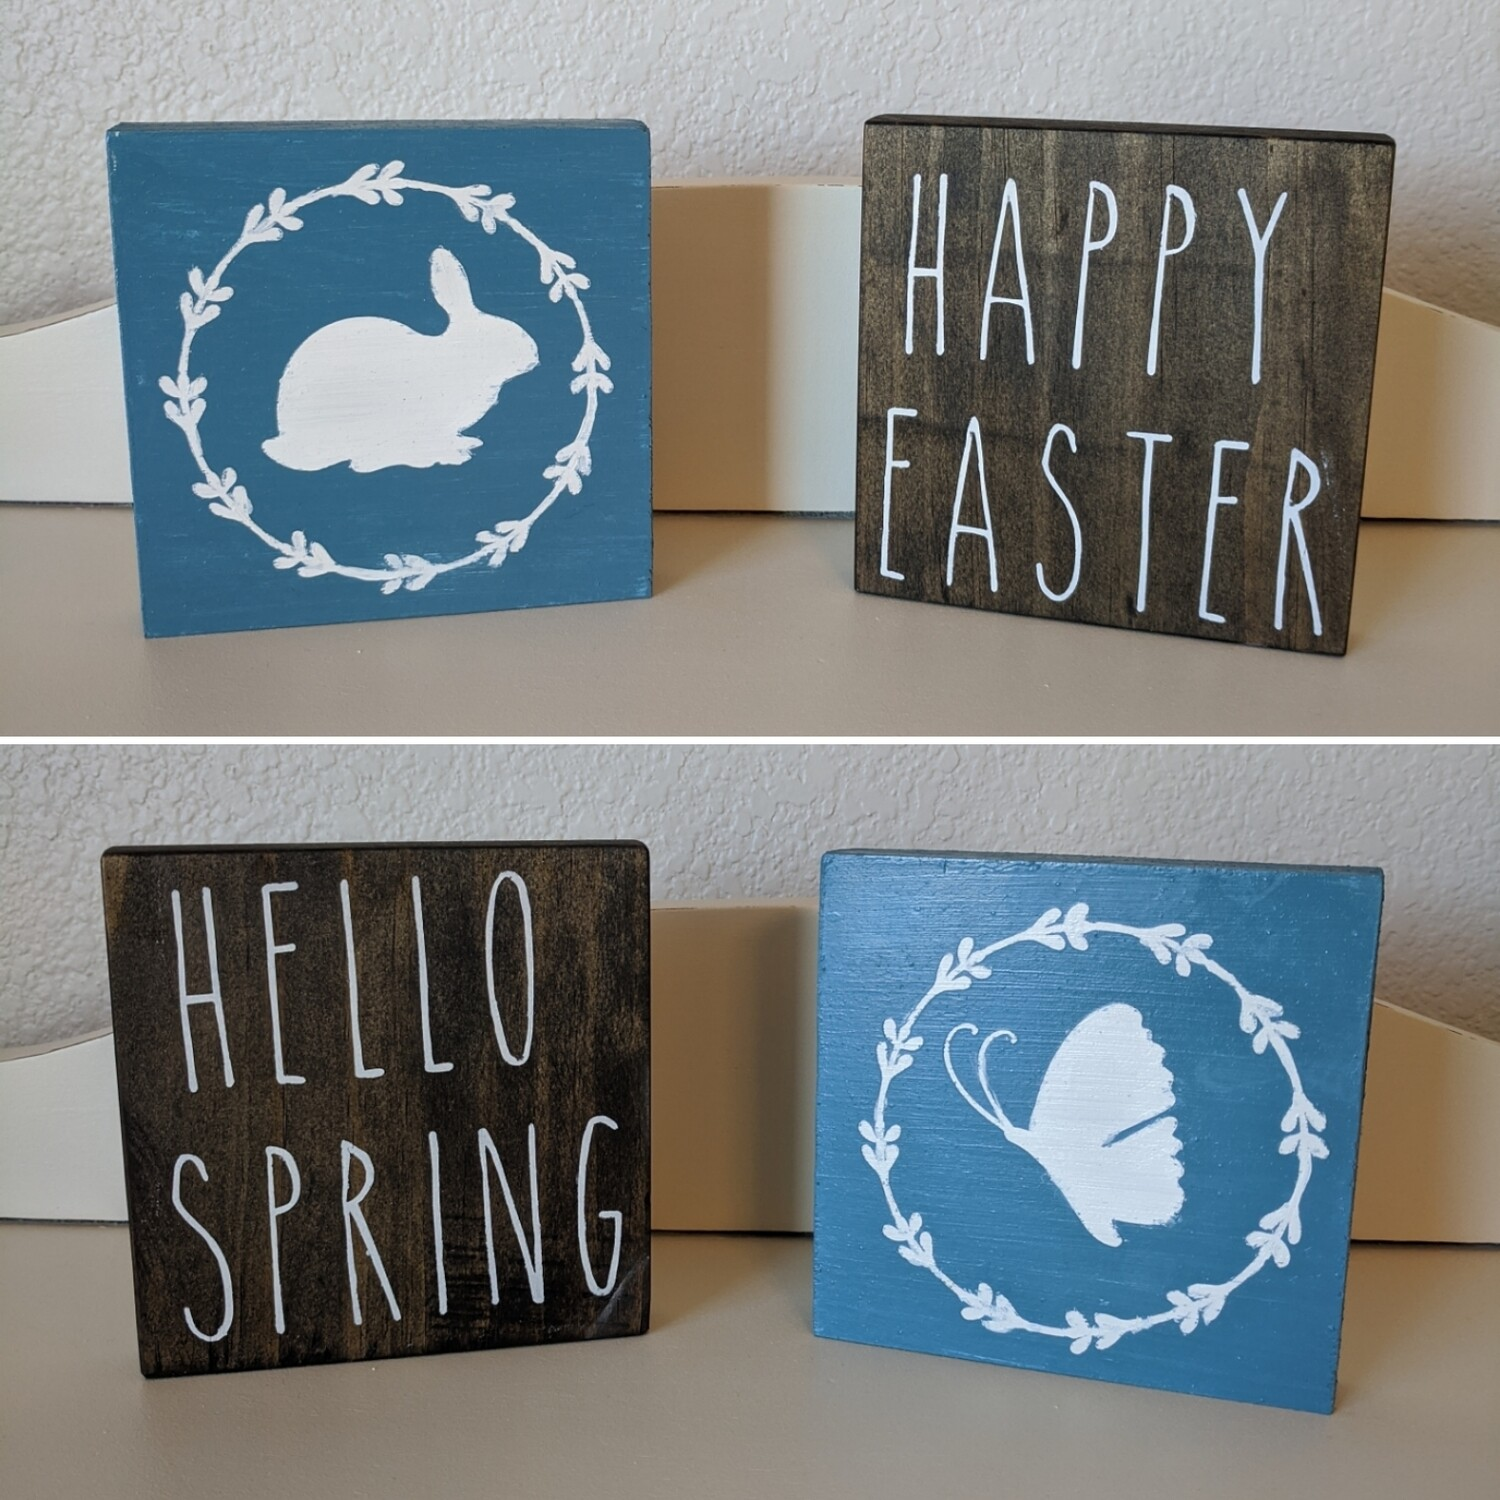 Happy Easter - Bunny Online Workshop - FREE SHIPPING/DELIVERY